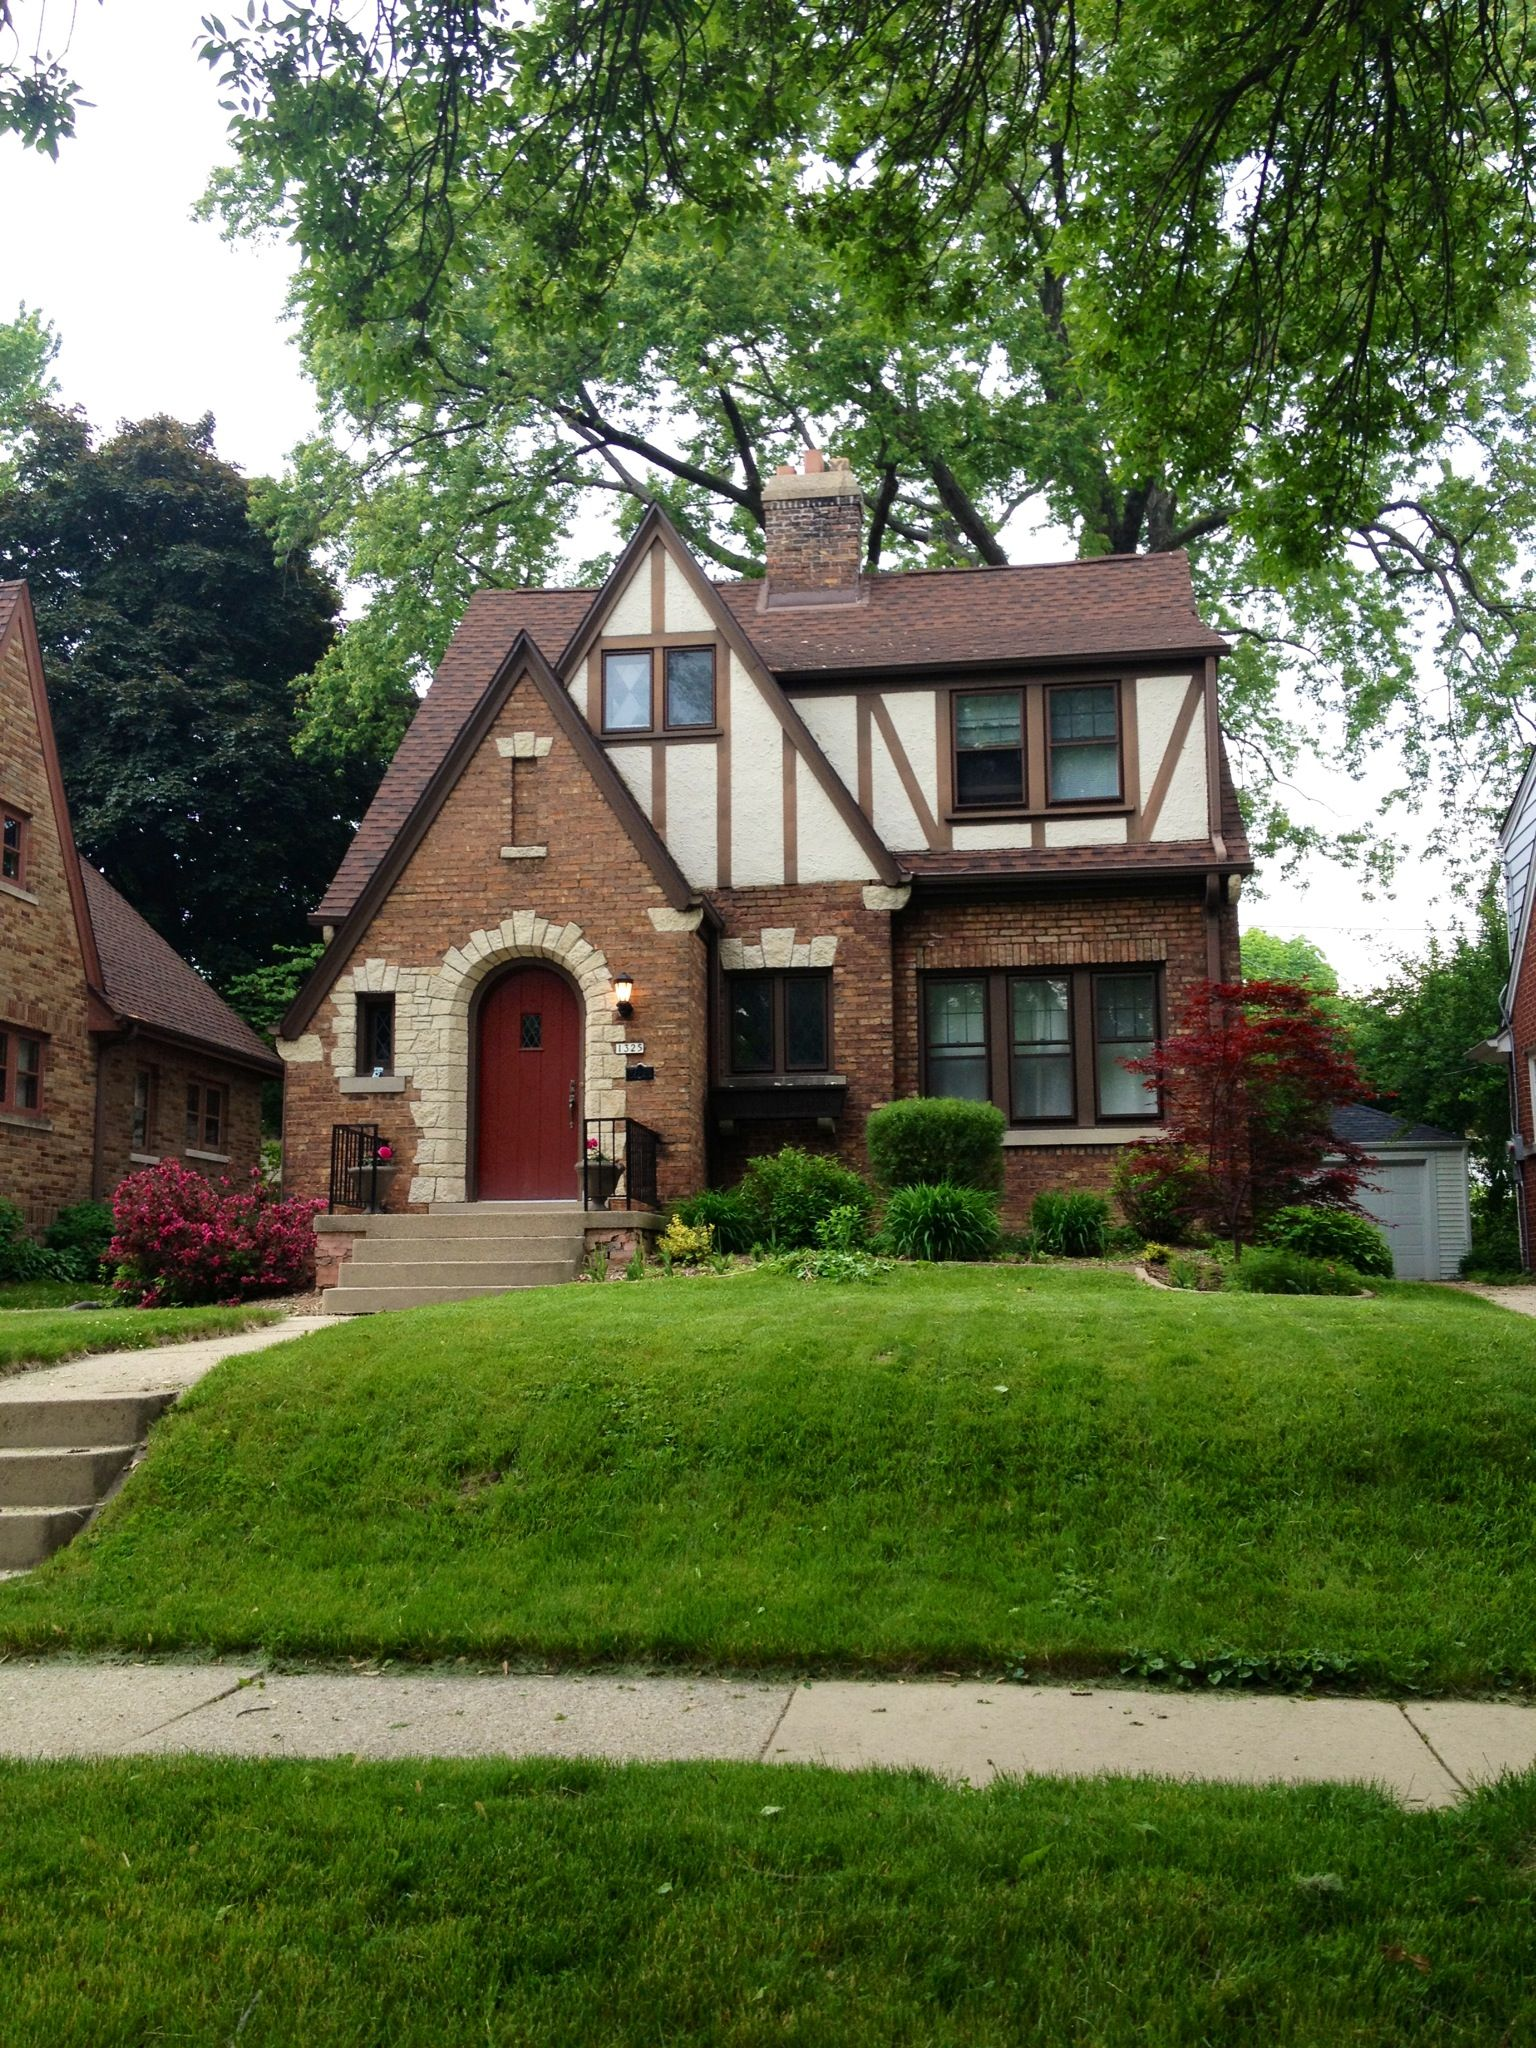 Adorable tudor style home reminds me of sugarhouse ut for Home design restoration